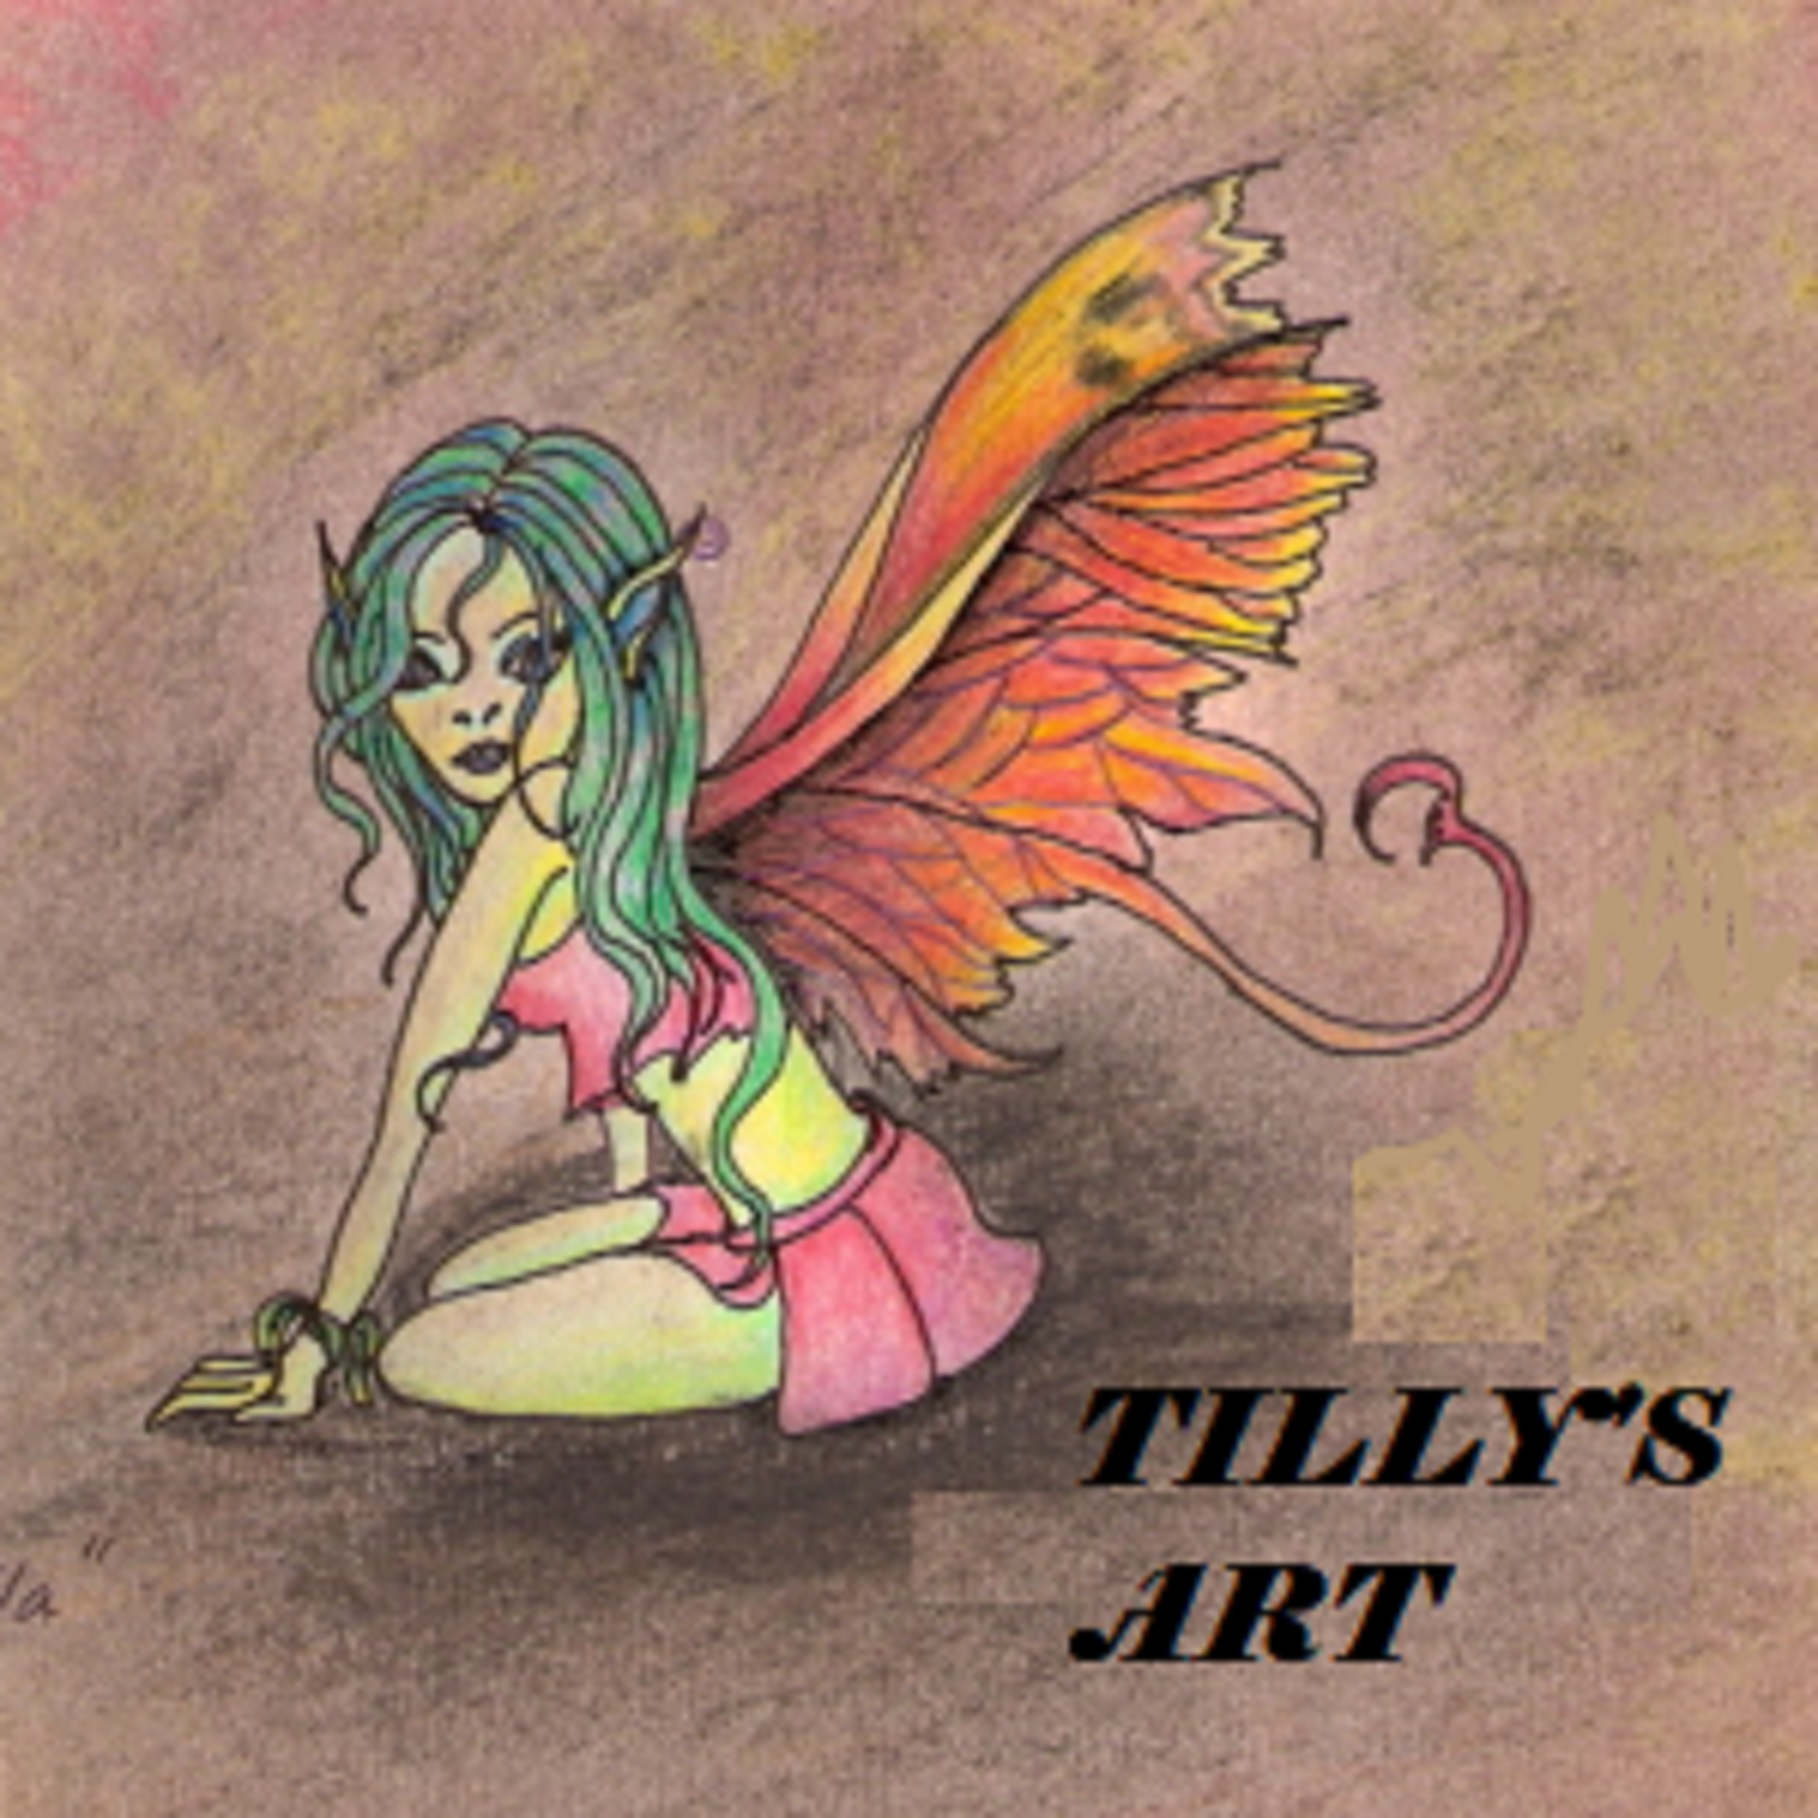 Tilly's Art